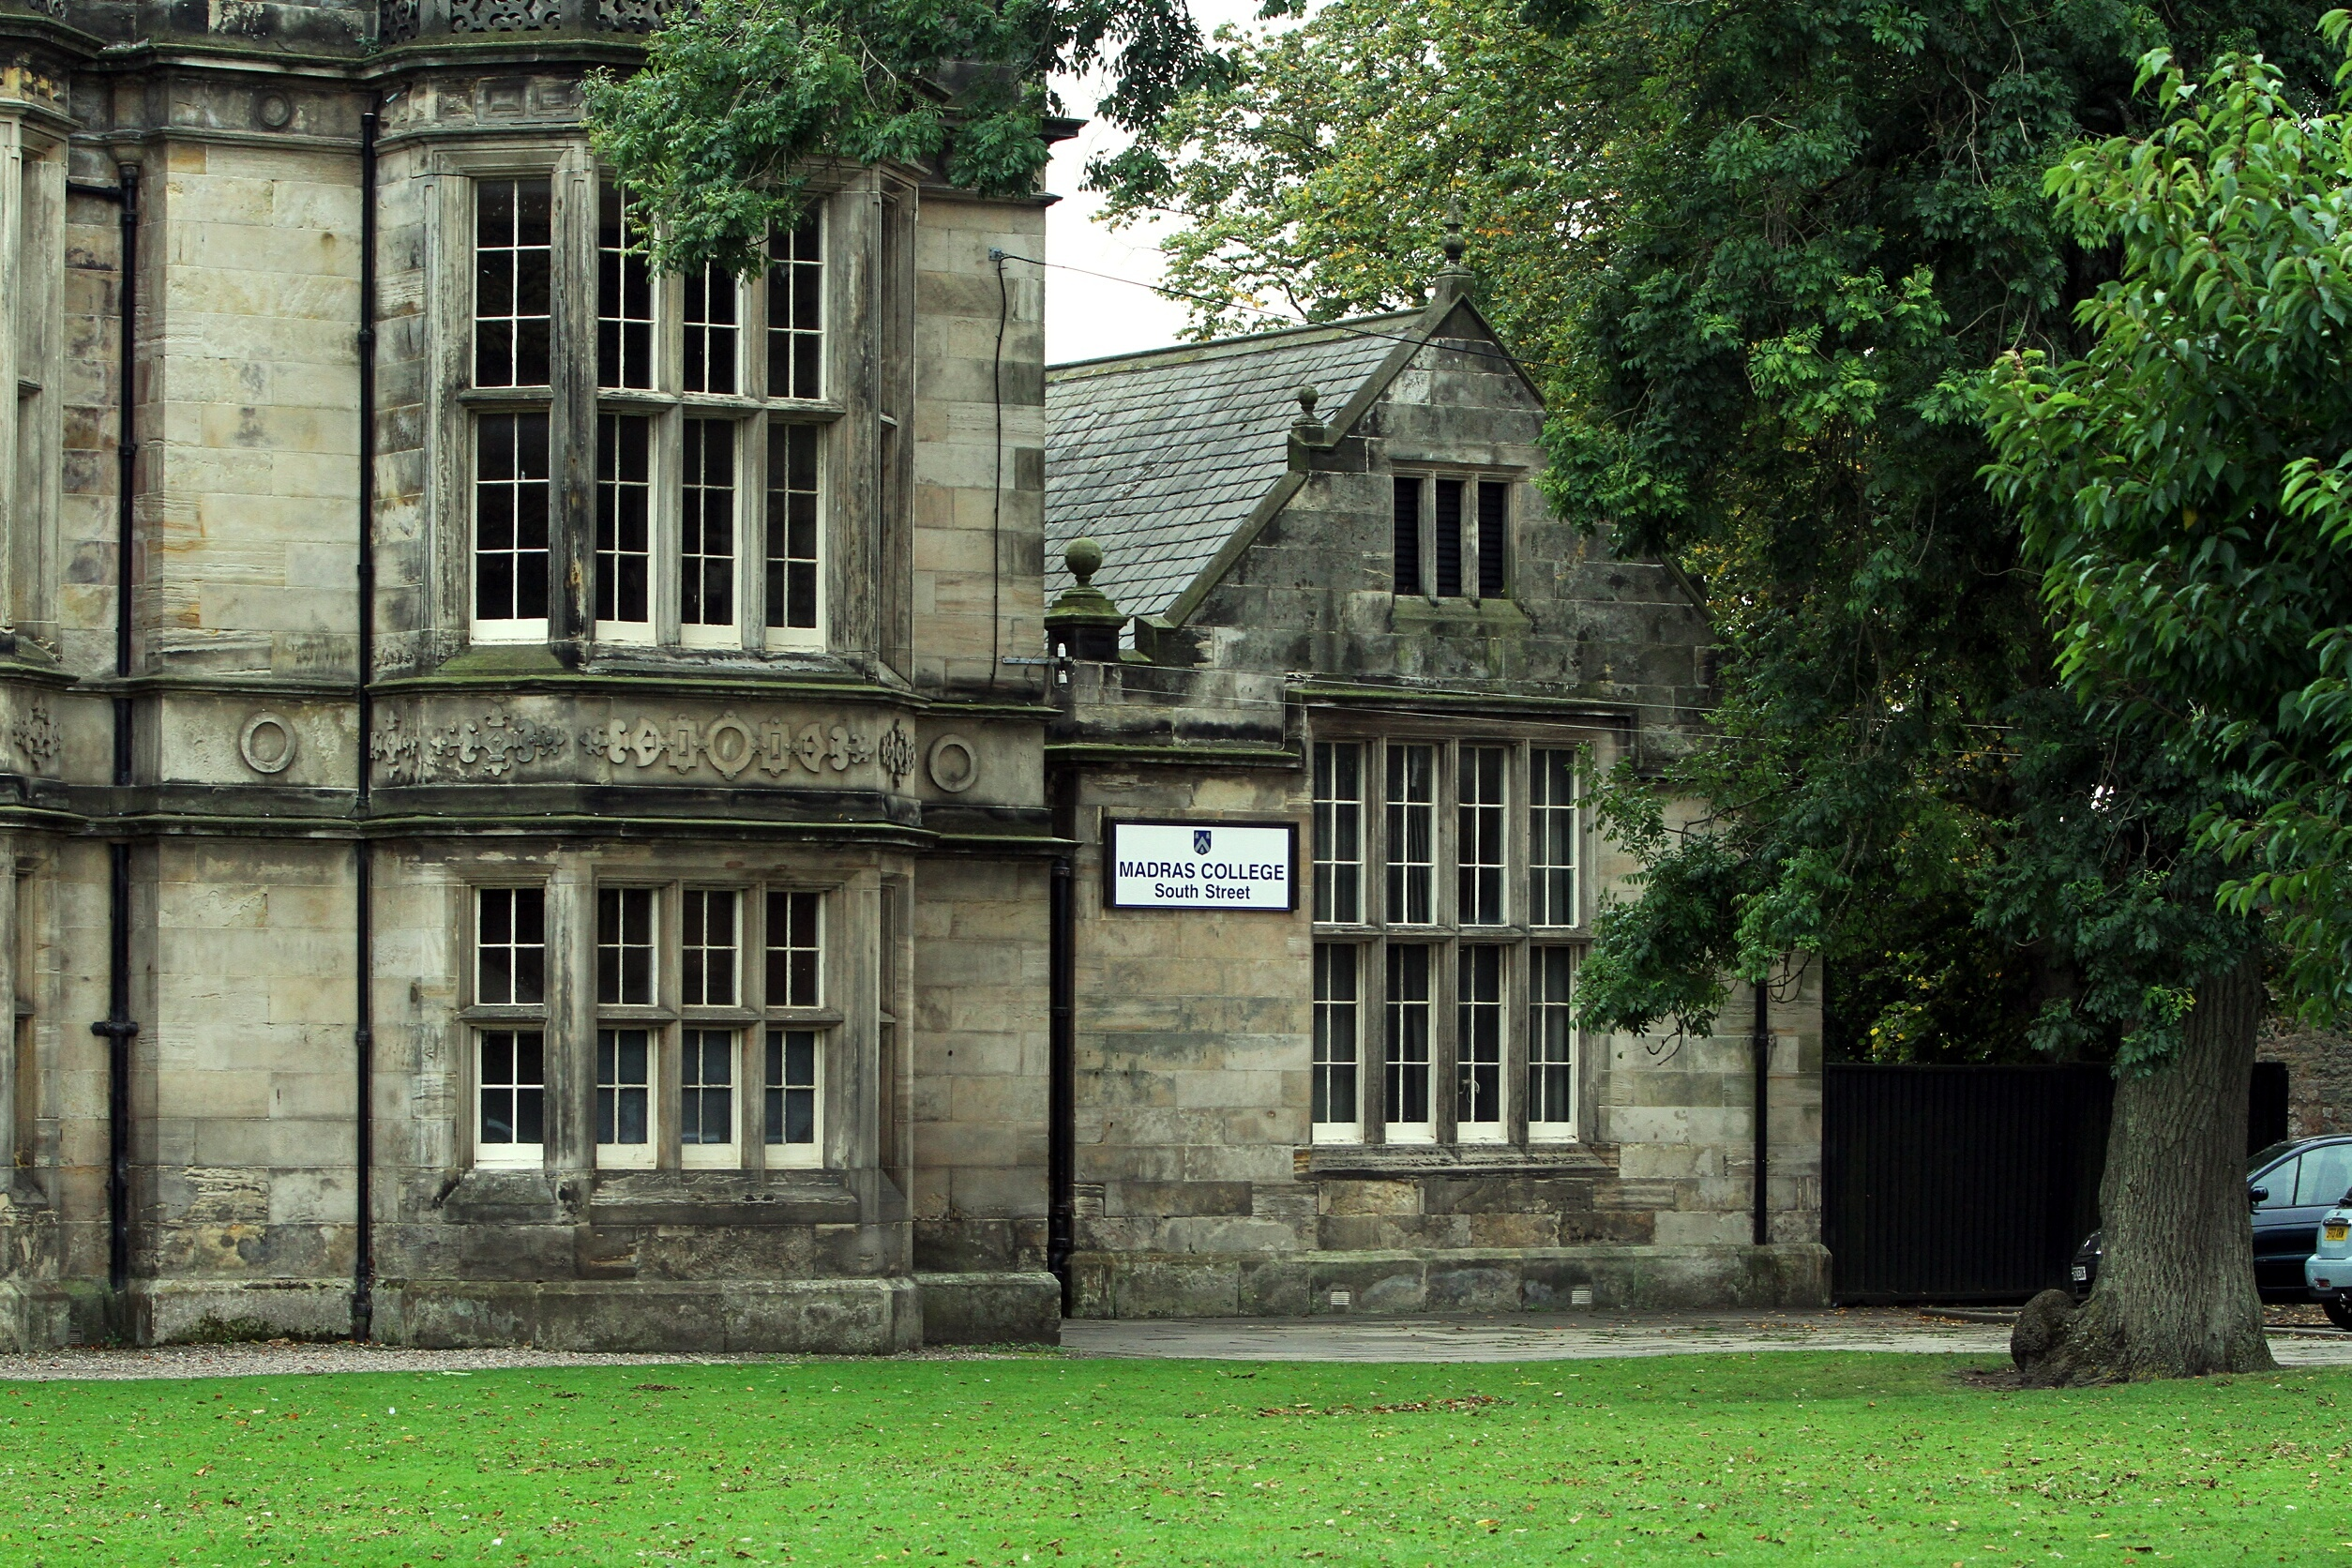 Madras College has proposed a reduction in the school week to save money